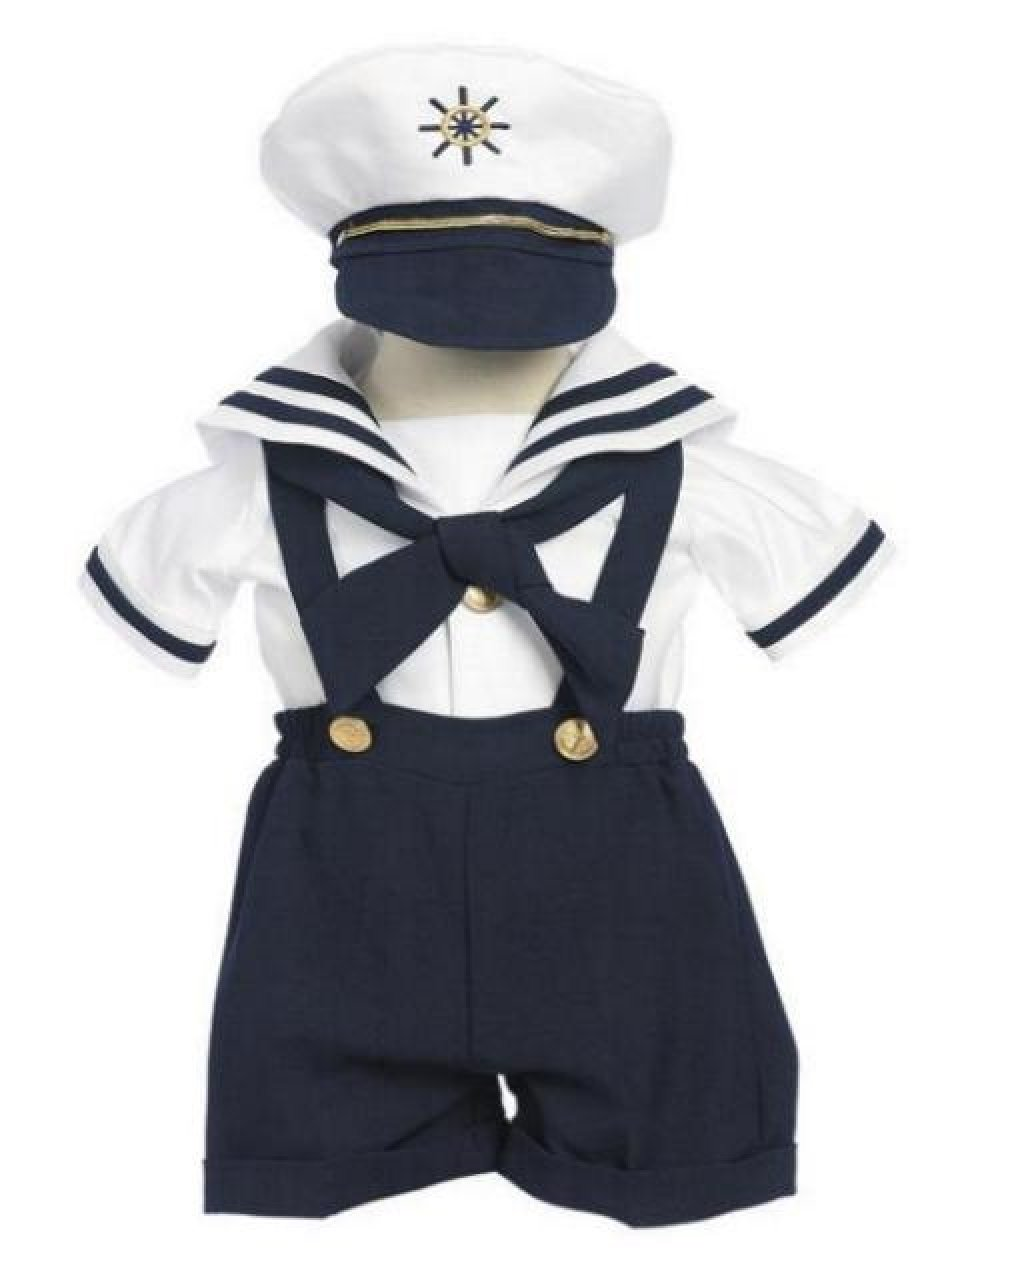 bf33774b0aab1 Get Quotations · Deluxe Boys Sailor Shorts Suit with Suspenders   Hat  Infants   Toddler s